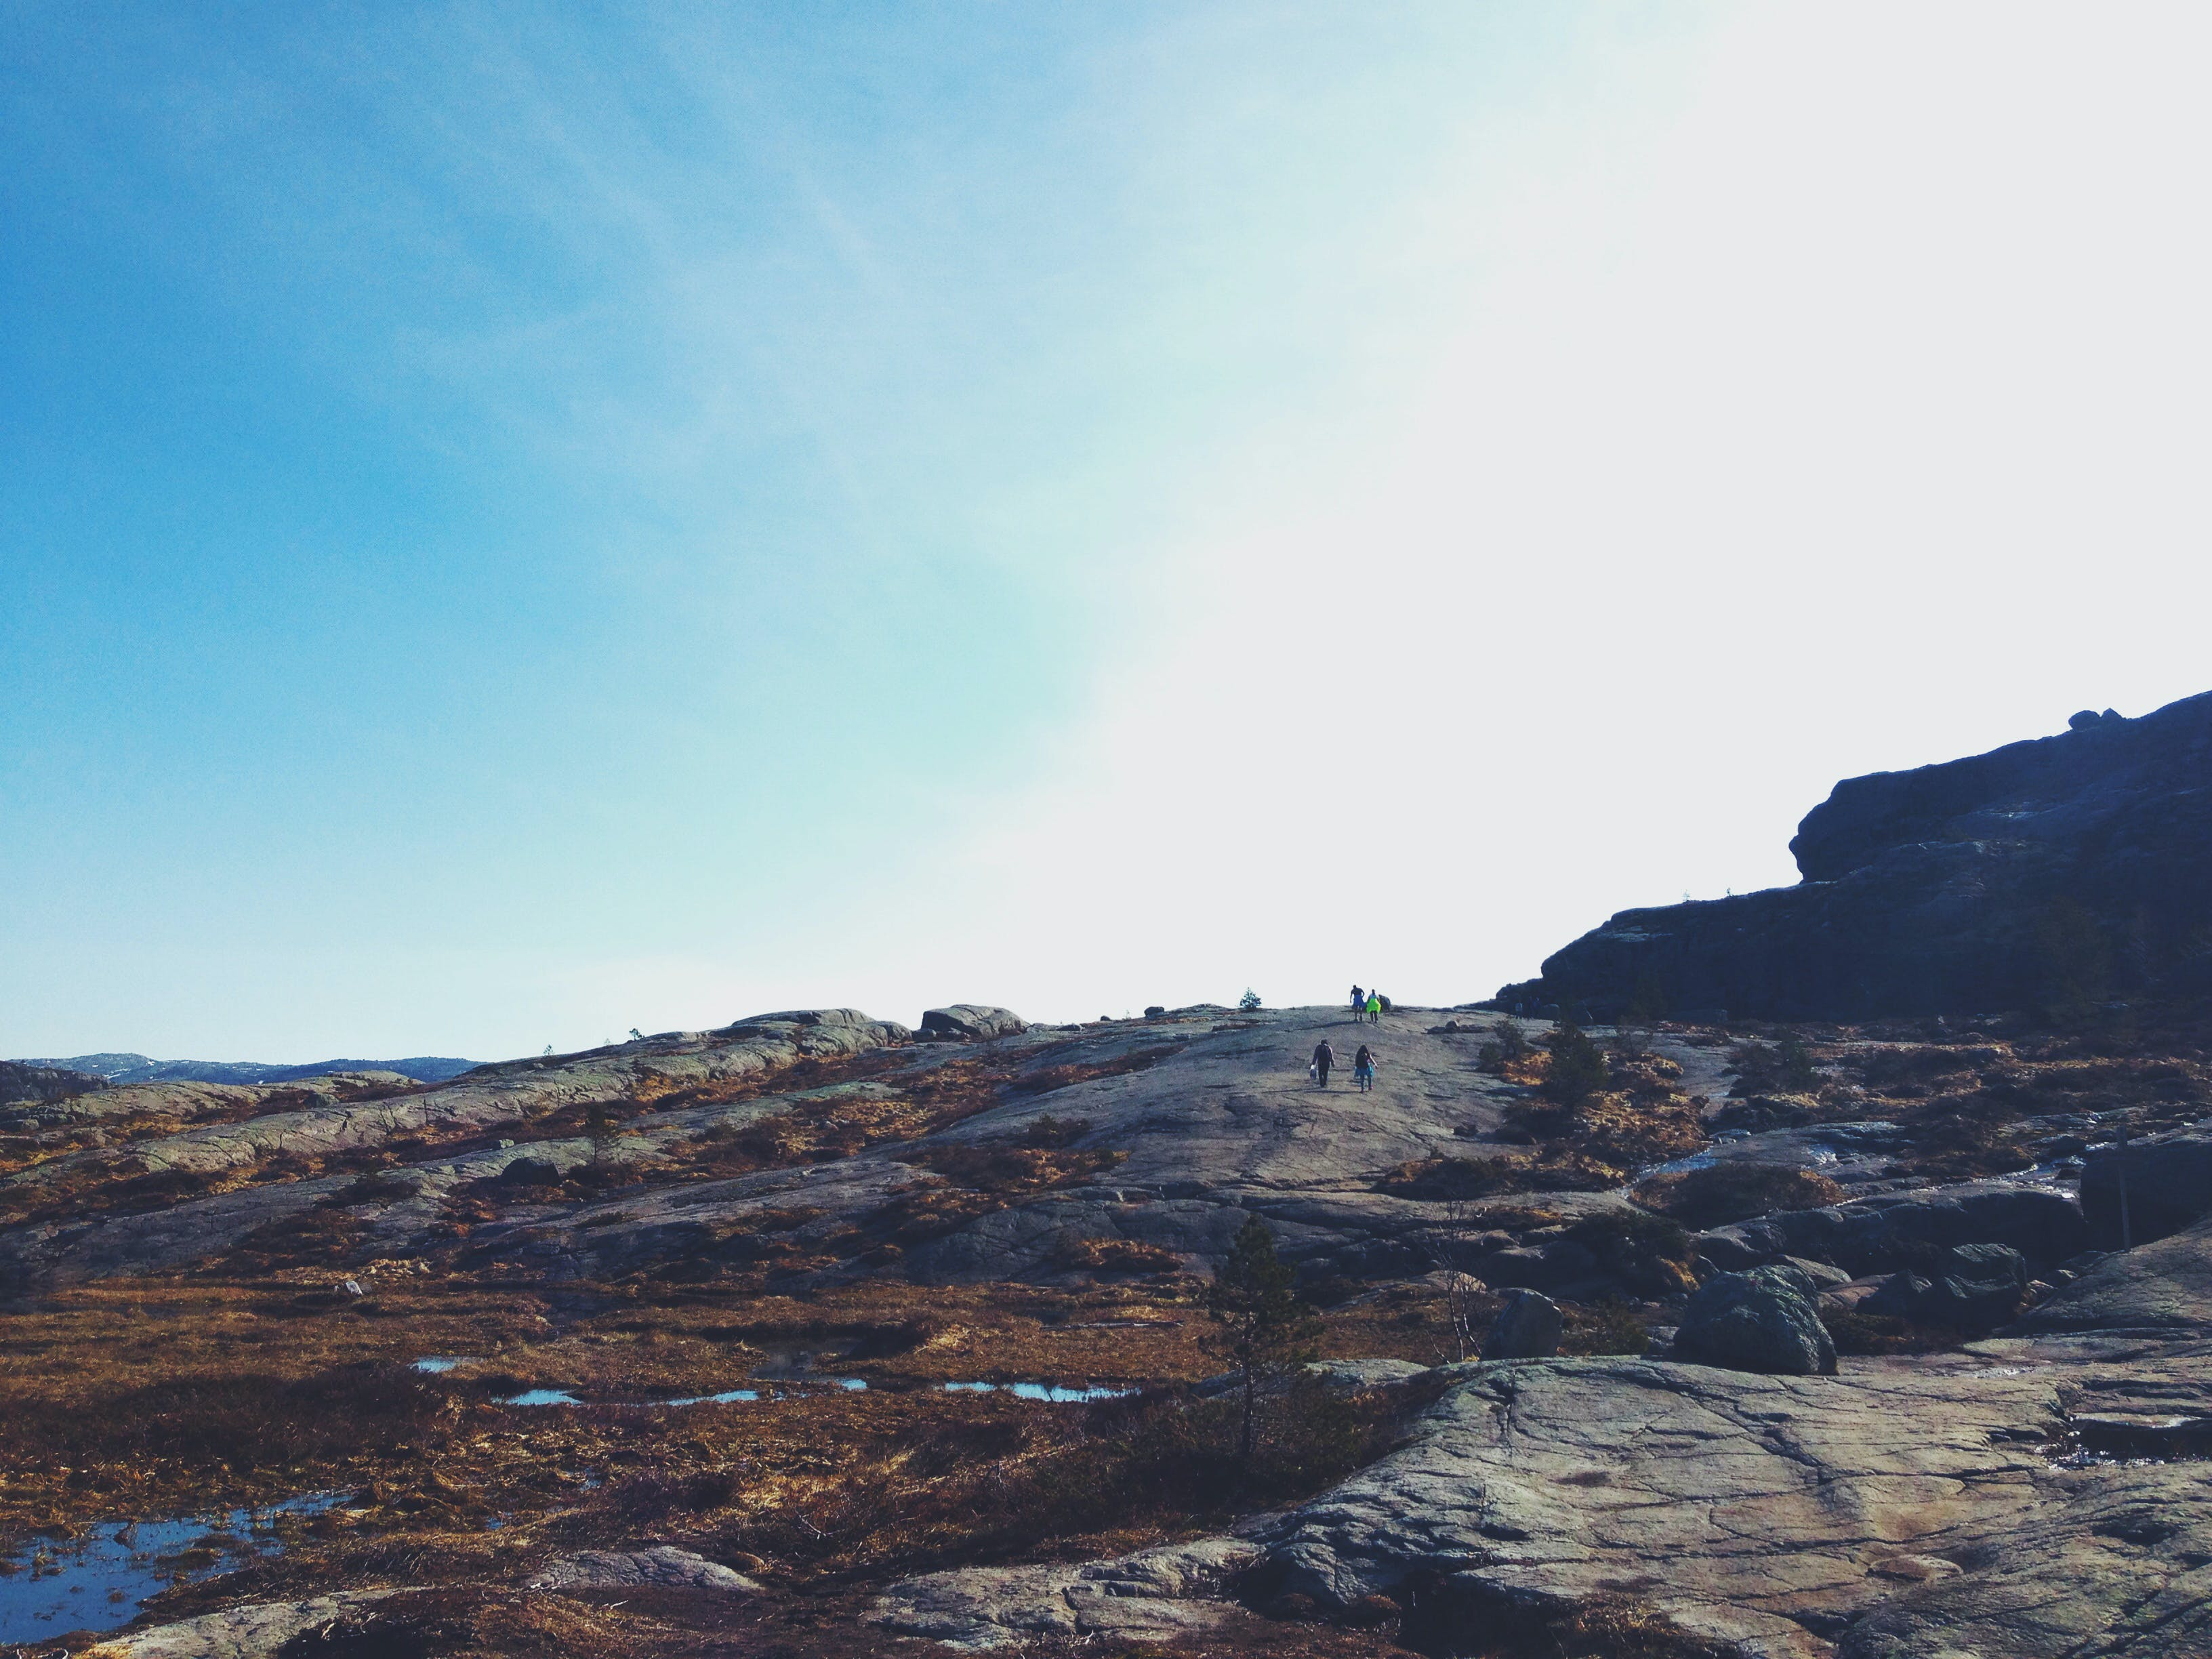 Free stock photo of sky, people, blue, rocks